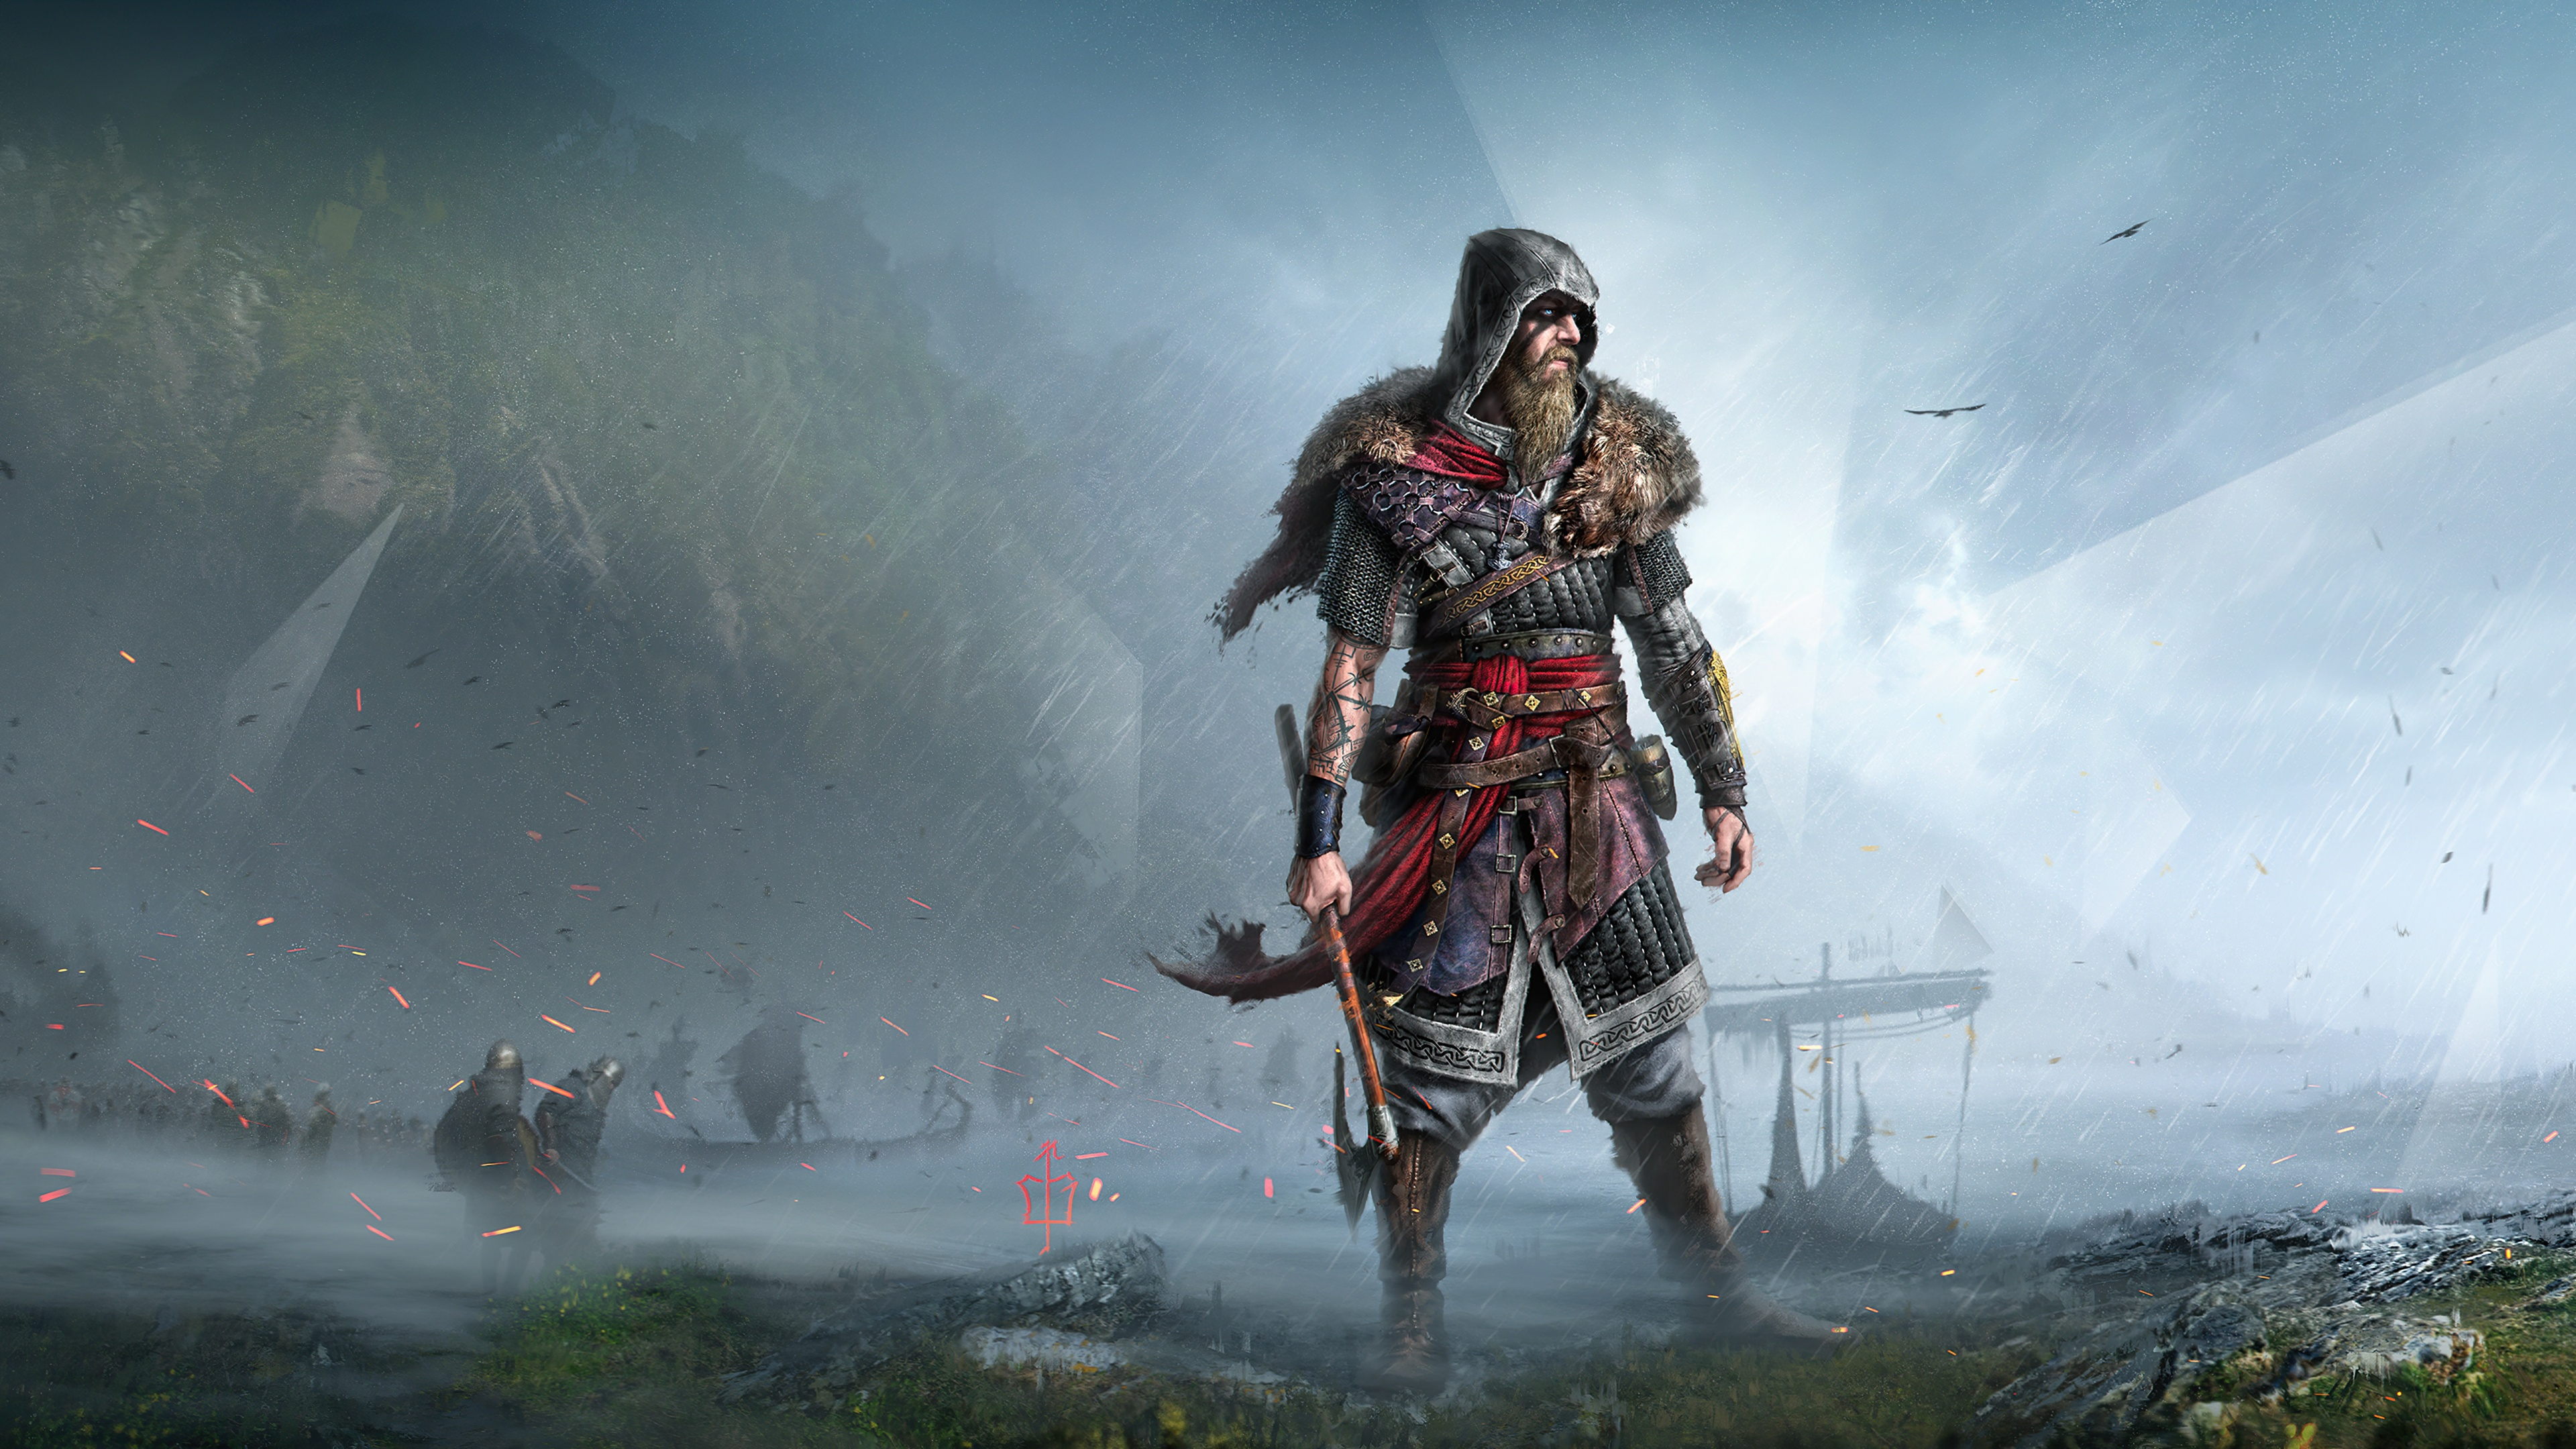 Assassin S Creed Valhalla 4k Wallpaper Viking Raider Fan Art Pc Games Playstation 4 Playstation 5 Xbox One